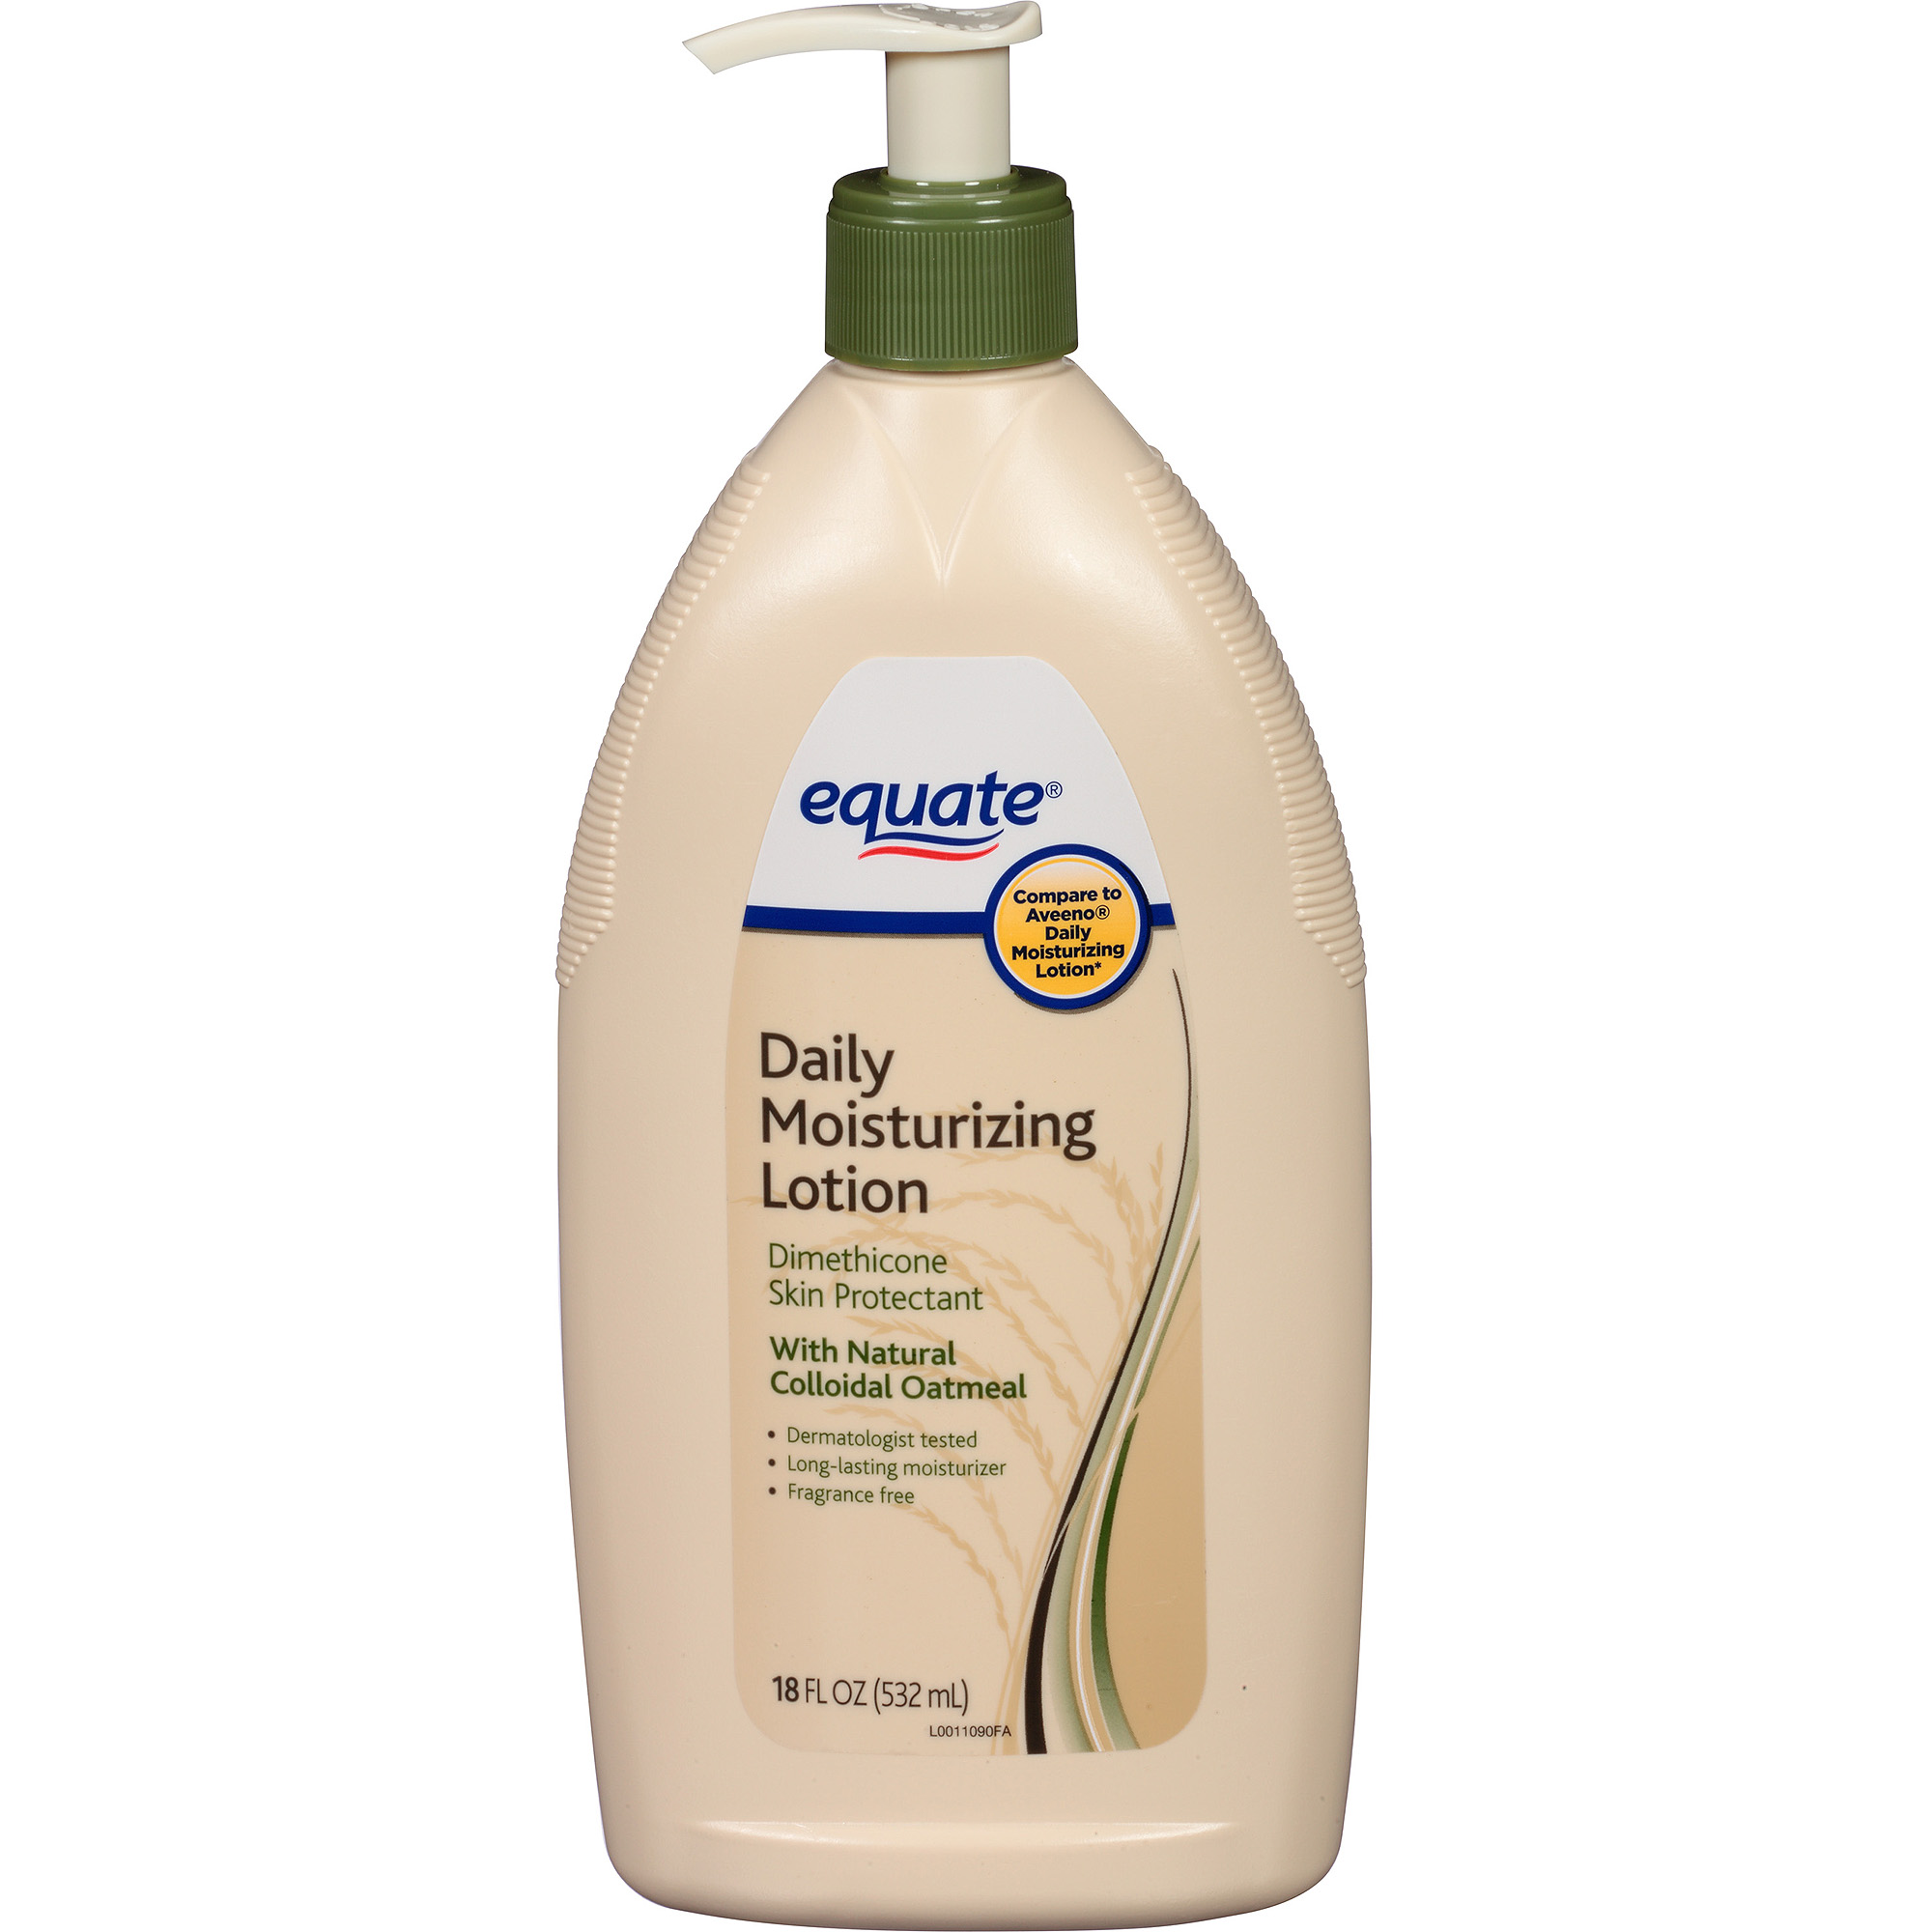 Equate Daily Moisturizing Lotion, 18 fl oz